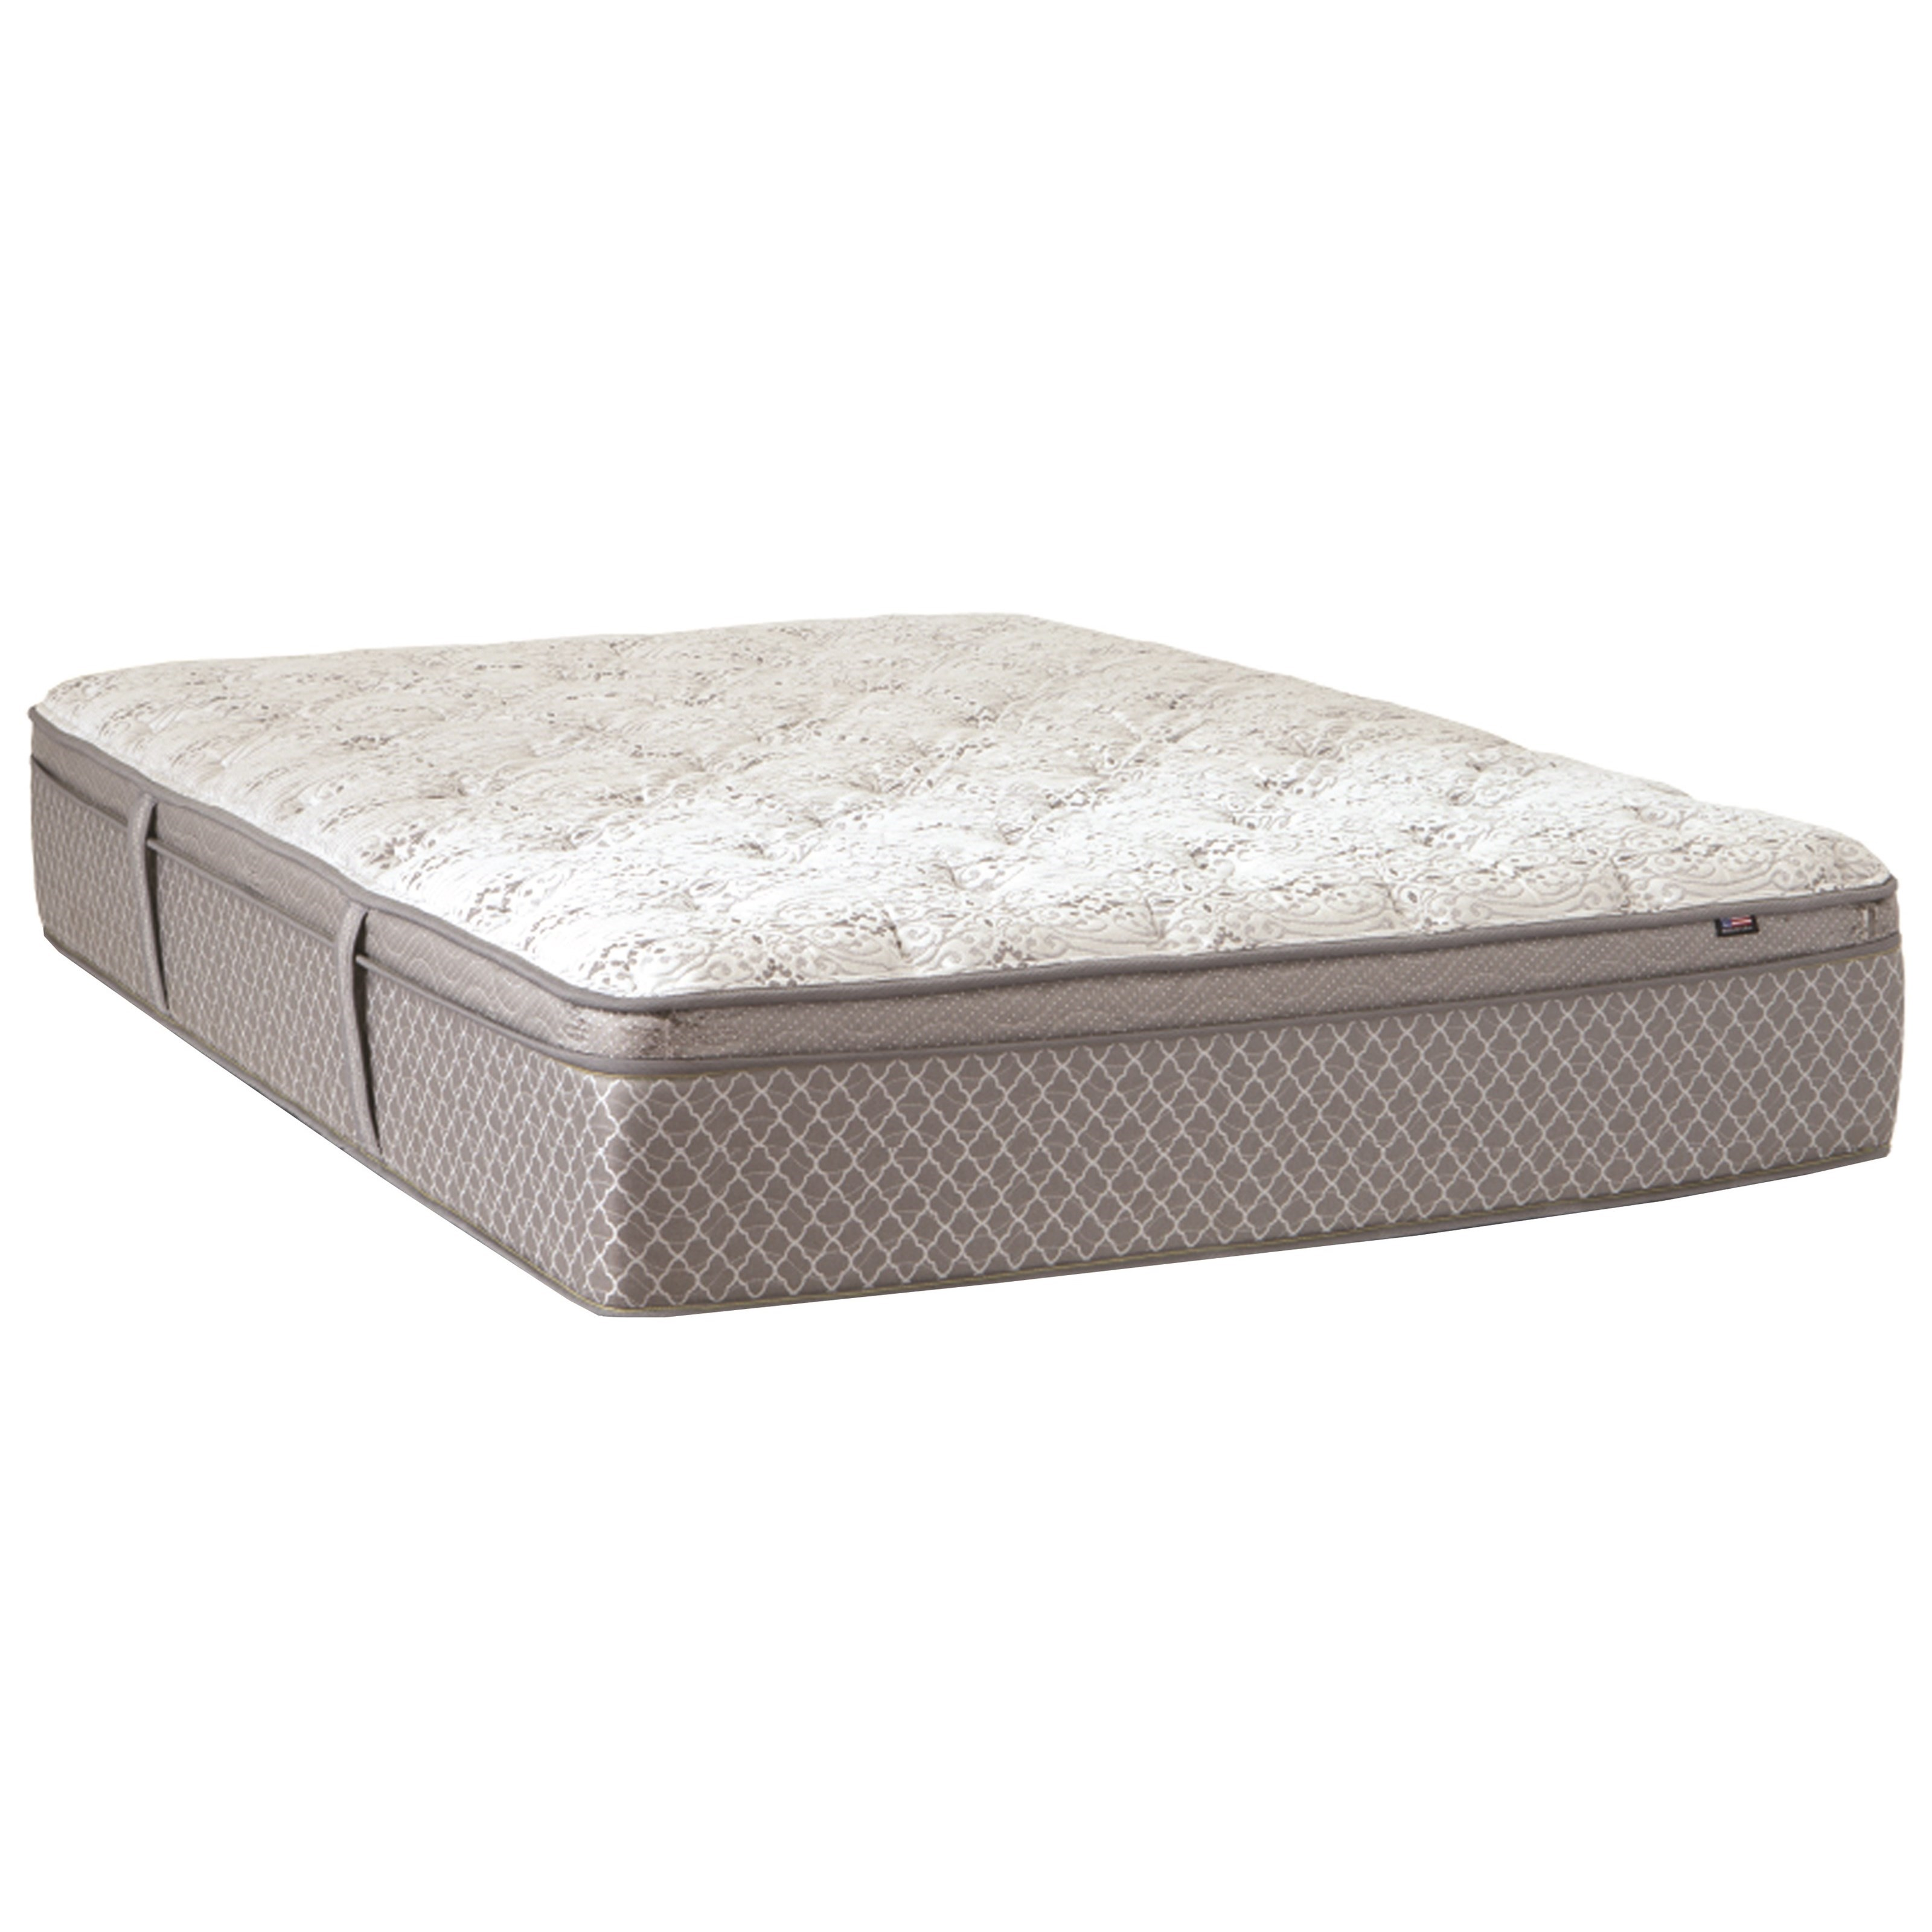 Gramercy Park Pillow Top Queen Pillow Top Mattress by Therapedic at Darvin Furniture